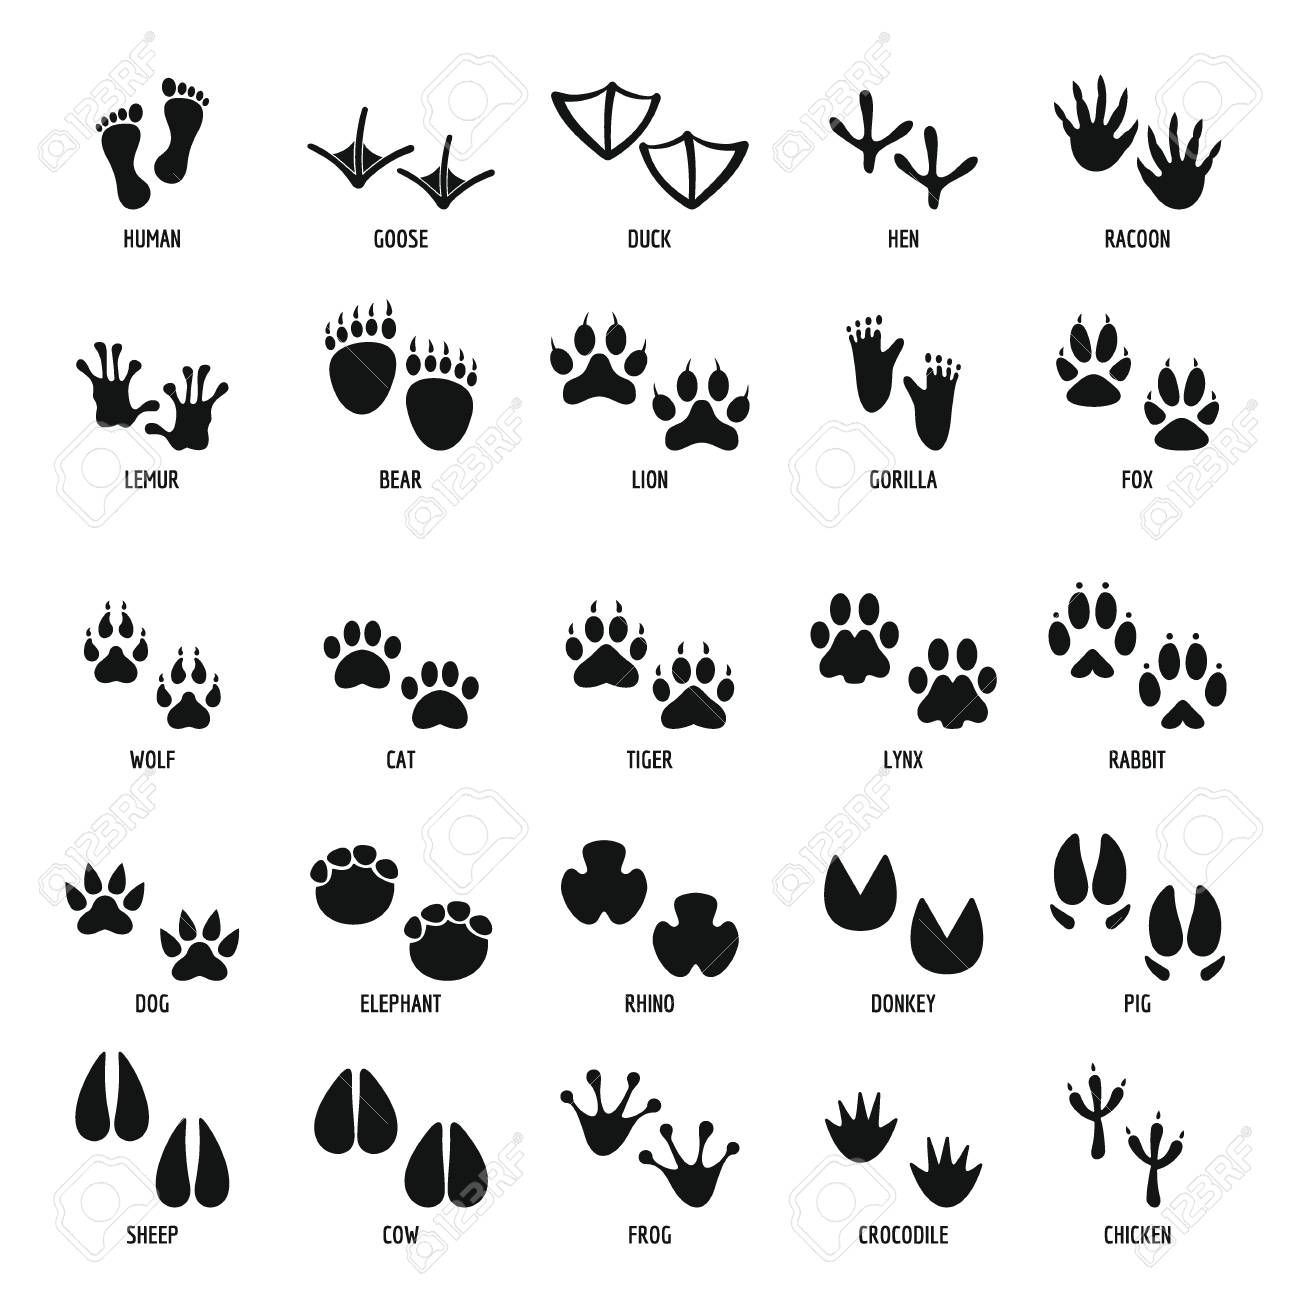 Animal Footprint Icons Set Simple Style Royalty Free Cliparts Vectors And Stock Illustration Image 90869178 Animal Footprints Animal Icon Animal Doodles